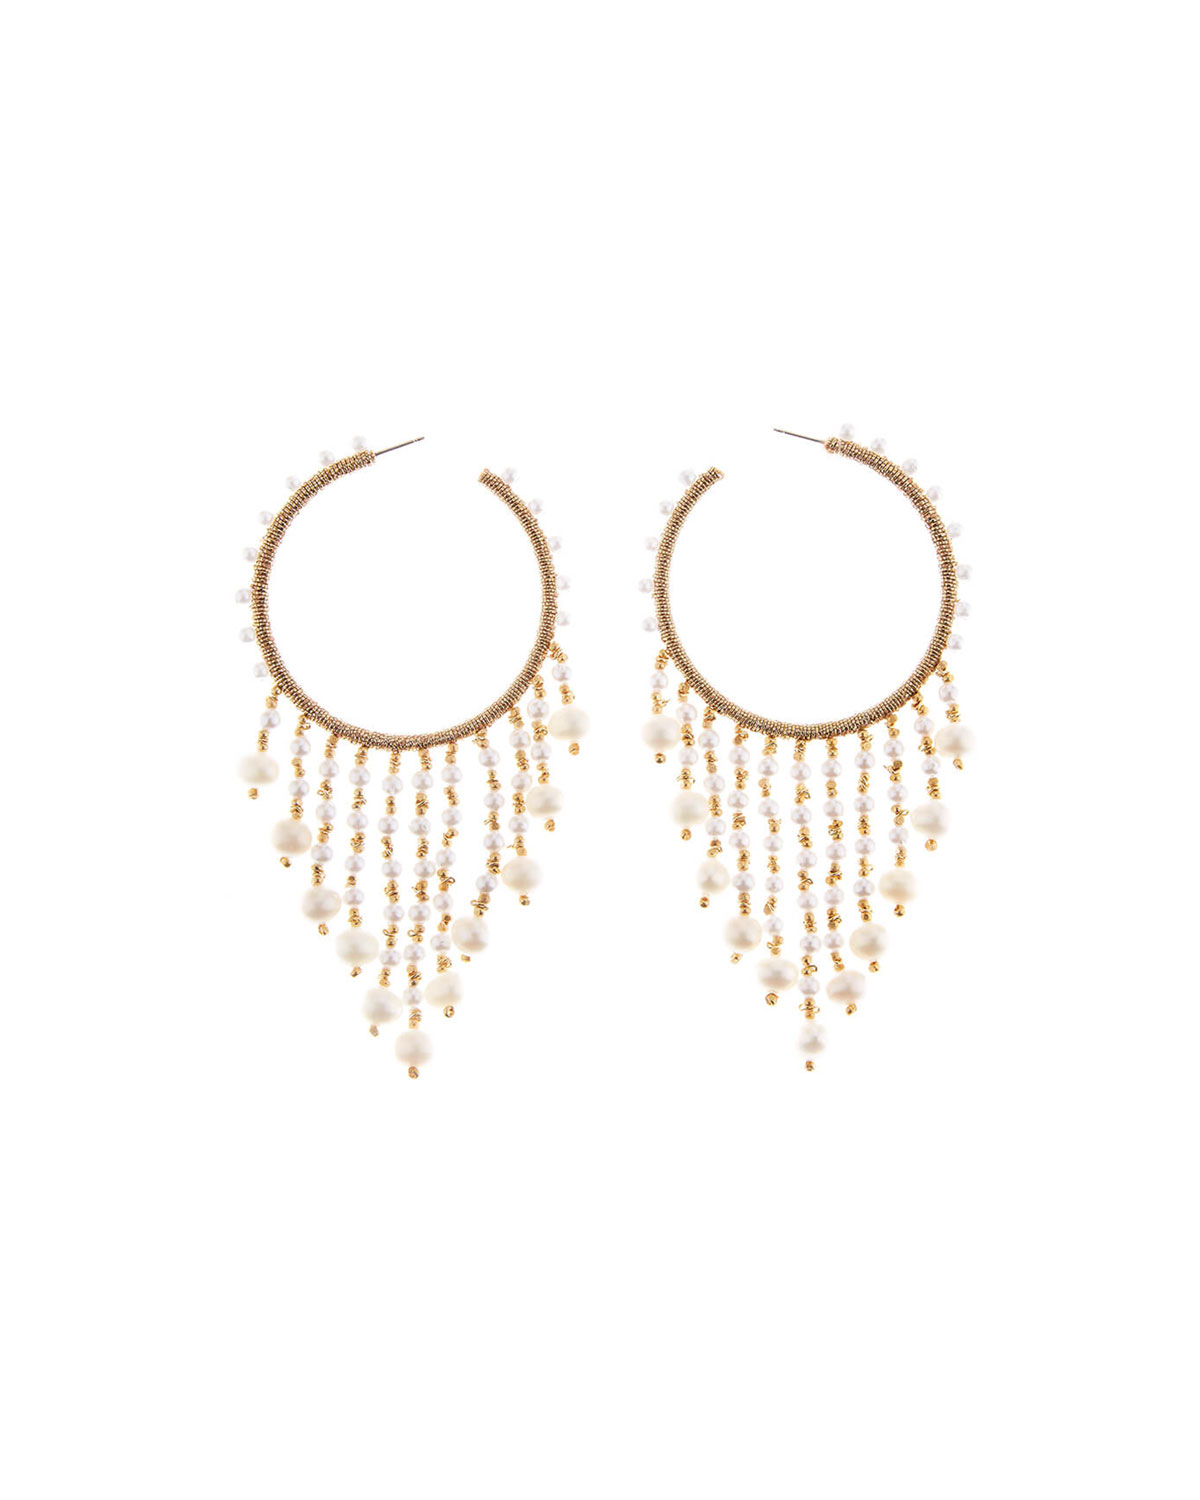 Oscar De La Renta Accessories BEADED HOOP DANGLE EARRINGS